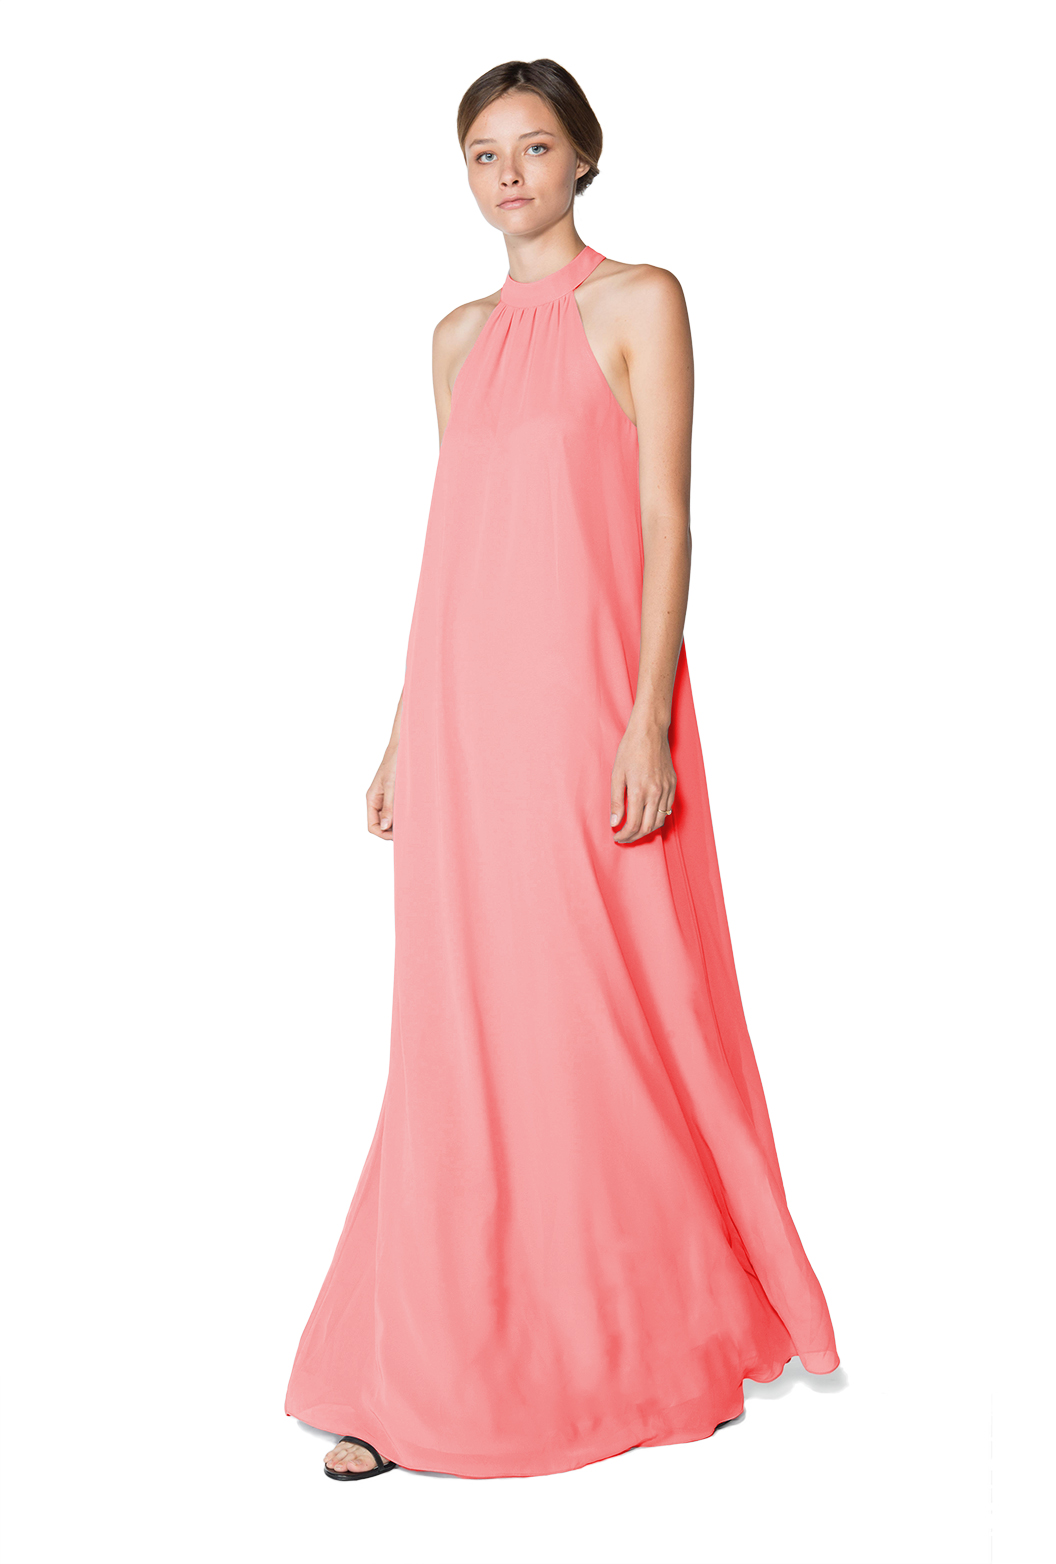 High neck dress by Joanna August style Elena